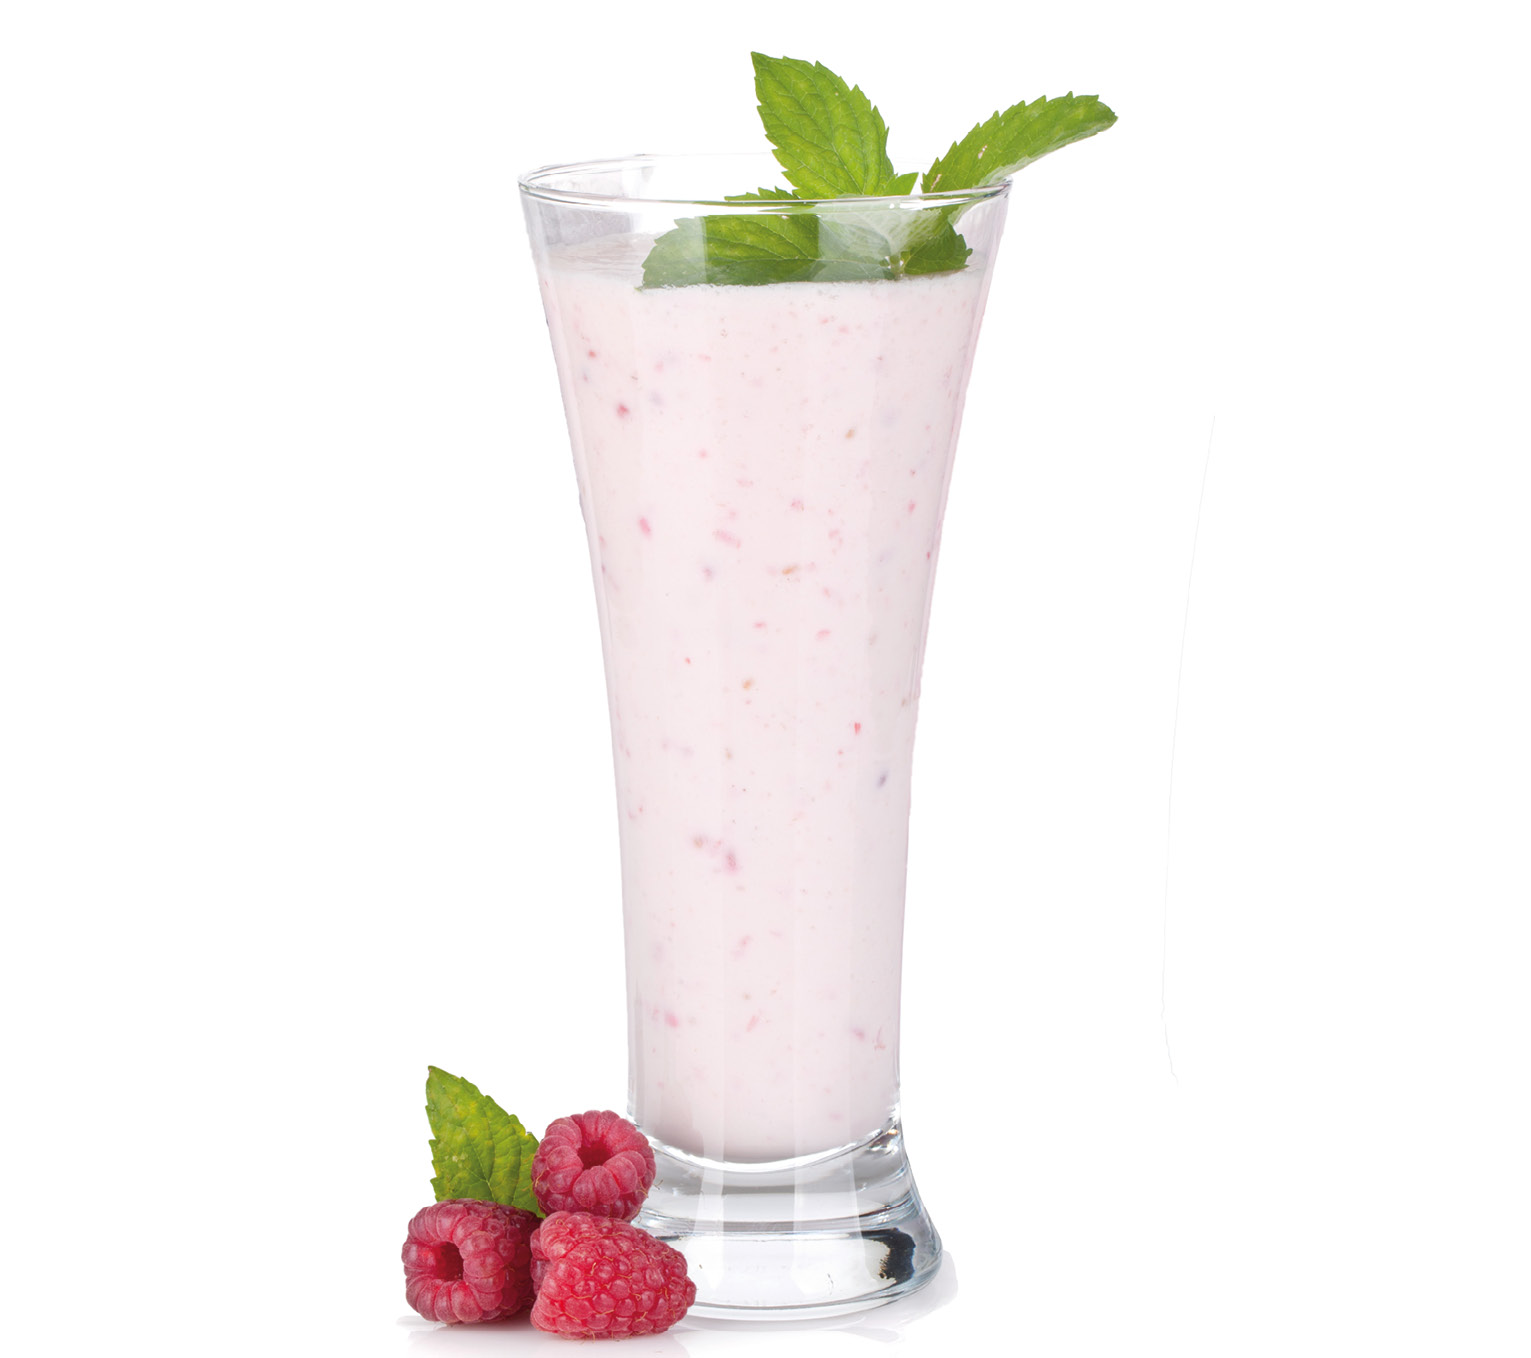 Himbeer-Buttermilch-Shake